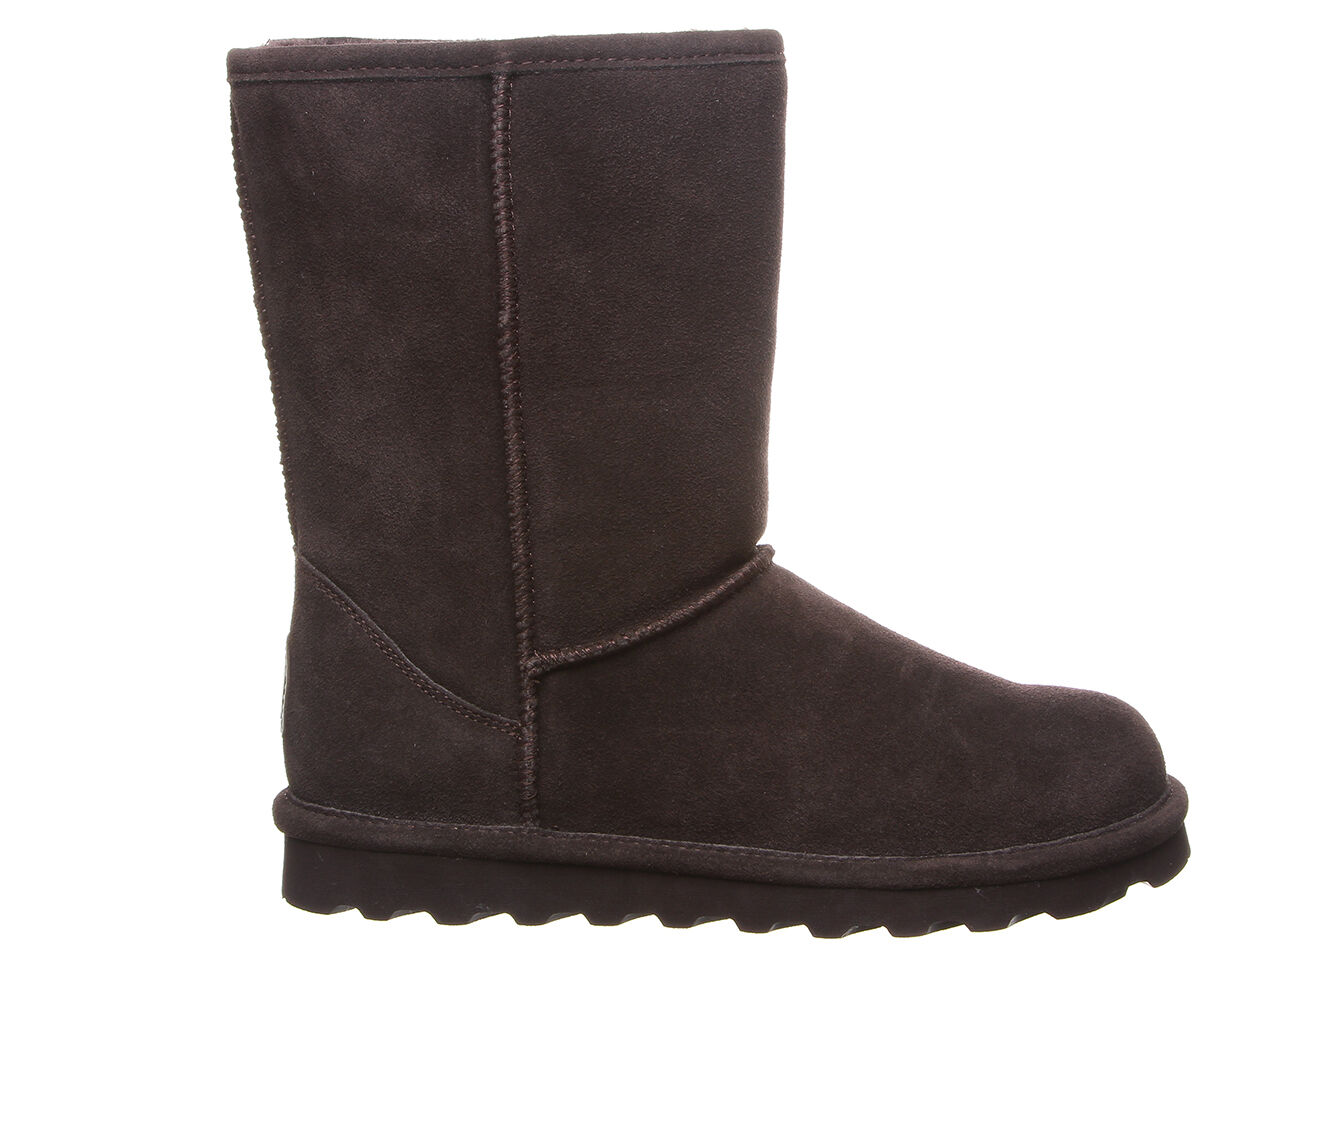 special sales Women's Bearpaw Elle Short Wide Boots Chocolate